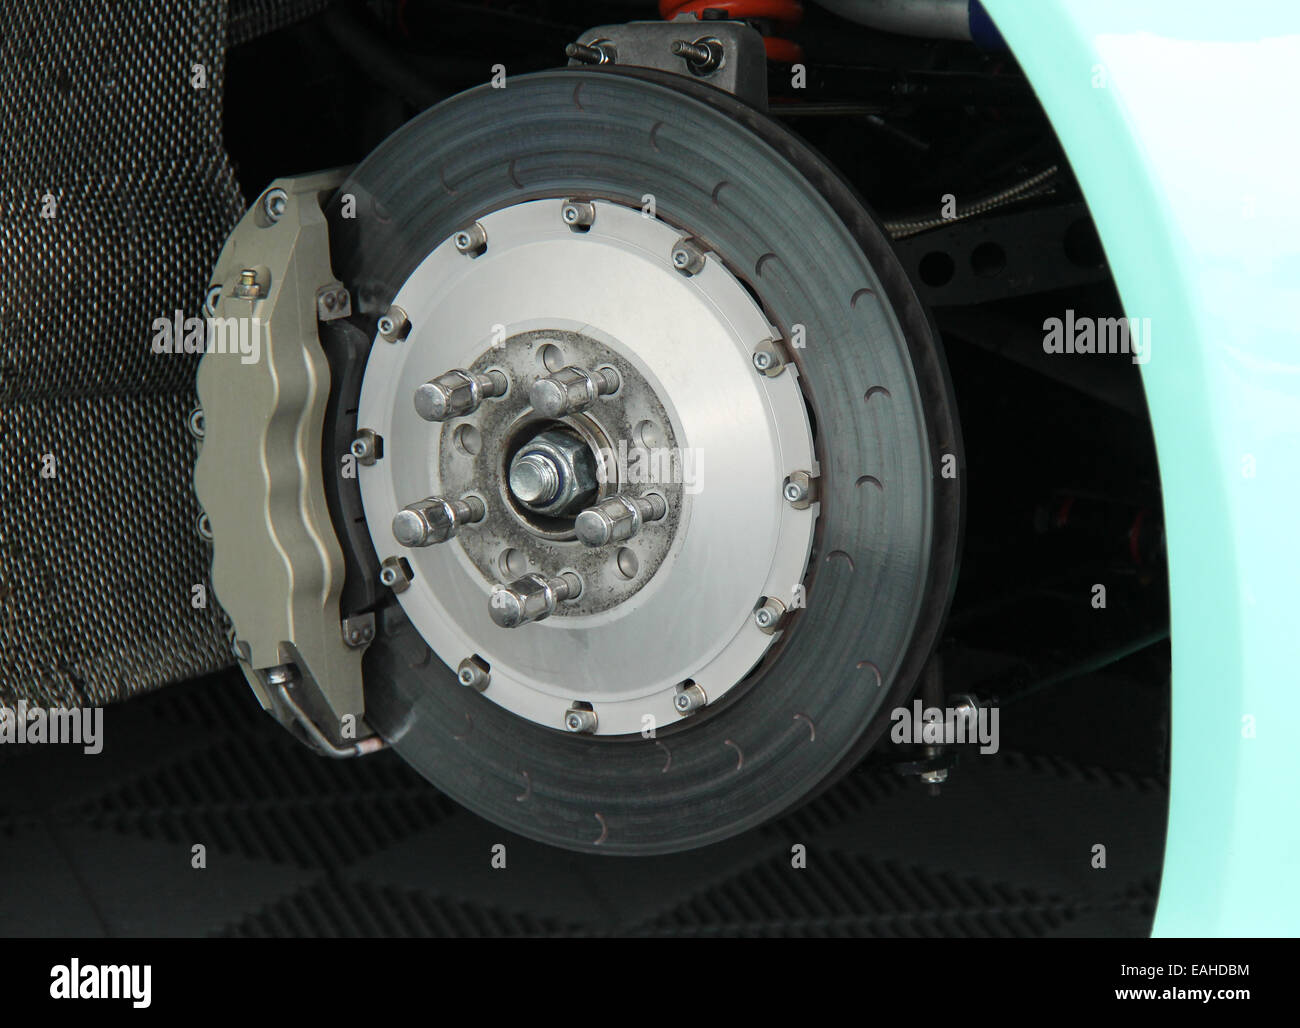 The Disc and Calliper of a Racing Sports Car. - Stock Image